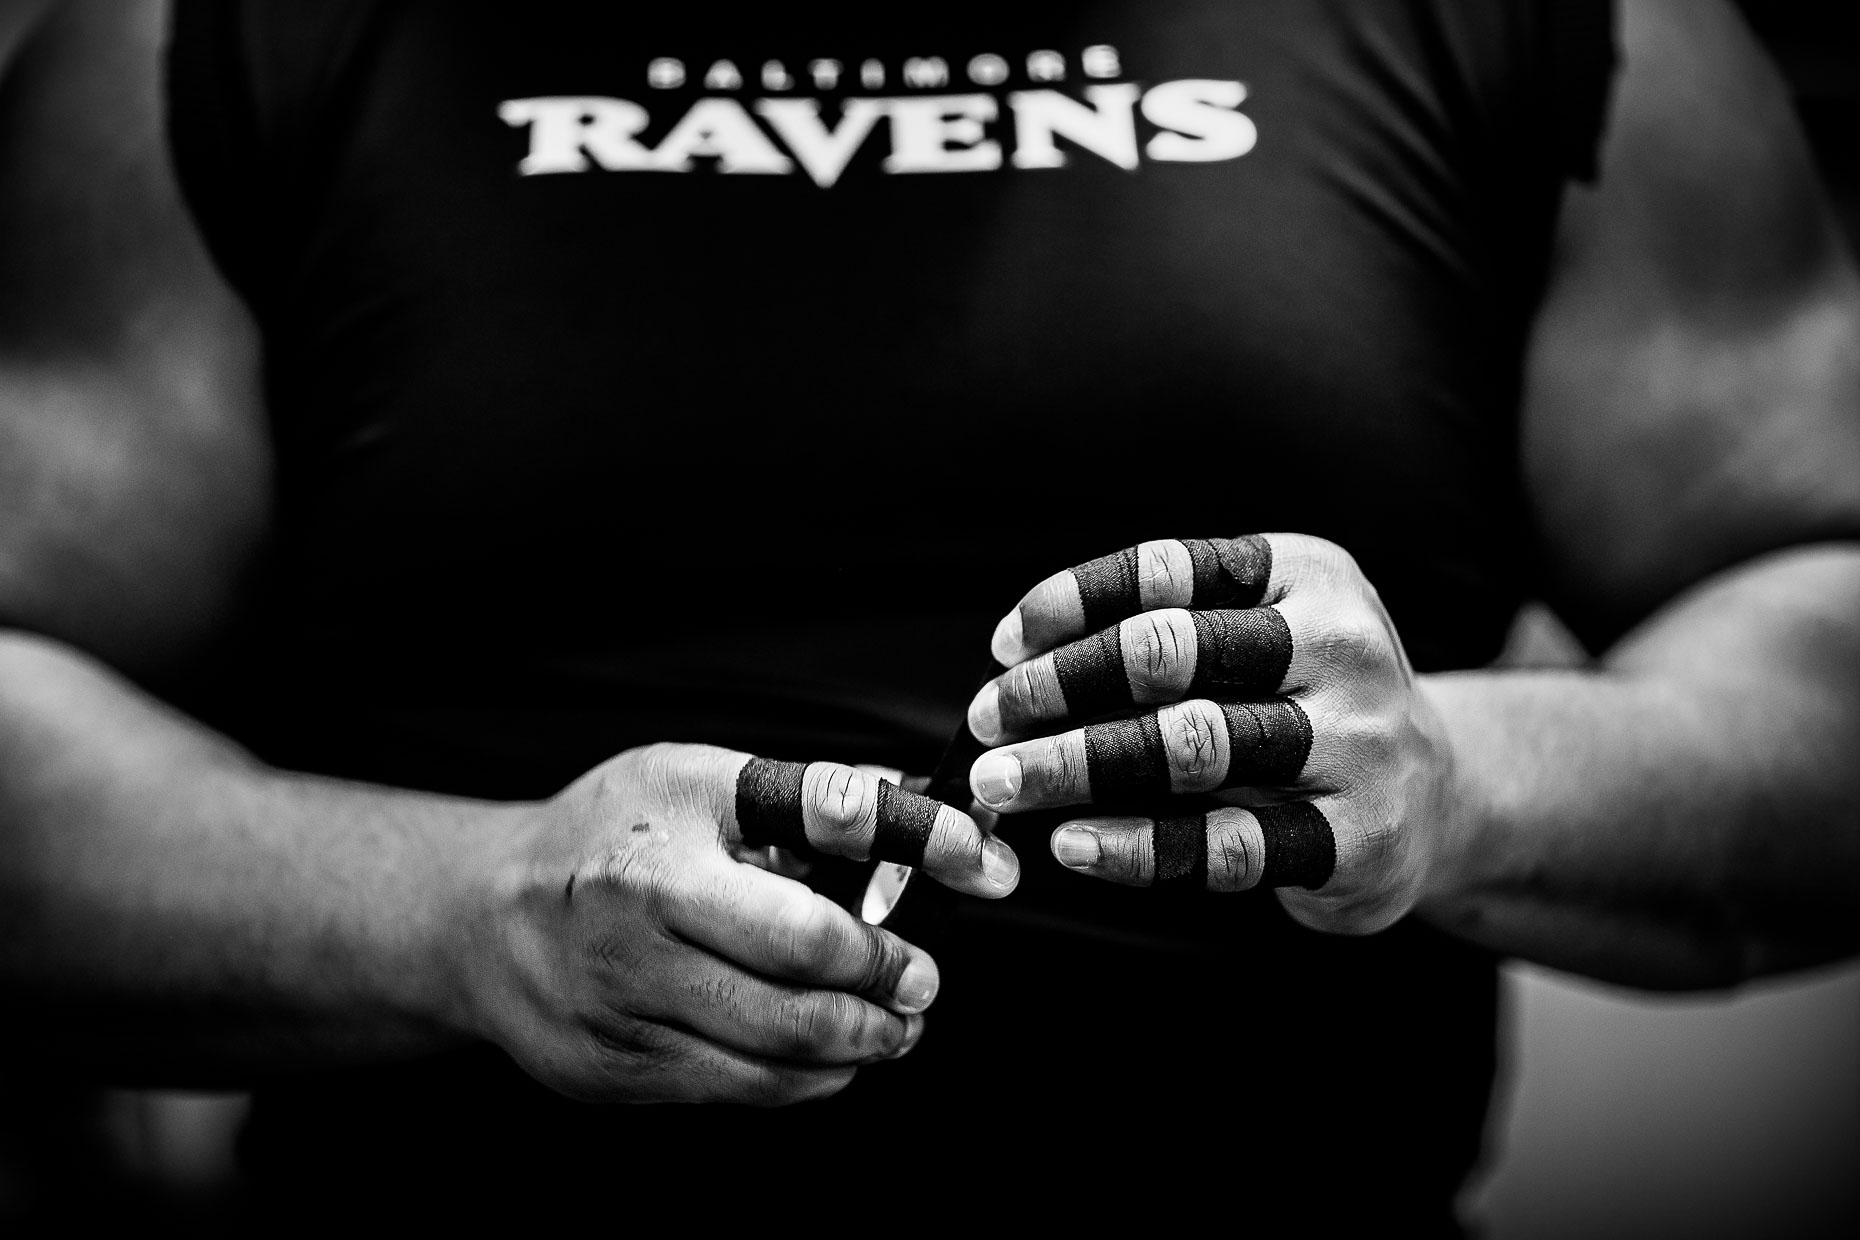 Shawn Hubbard | Commercial & Editorial Photographer | Sports | Active Lifestyle | Documentary | Official Team Photographer of the Baltimore Ravens